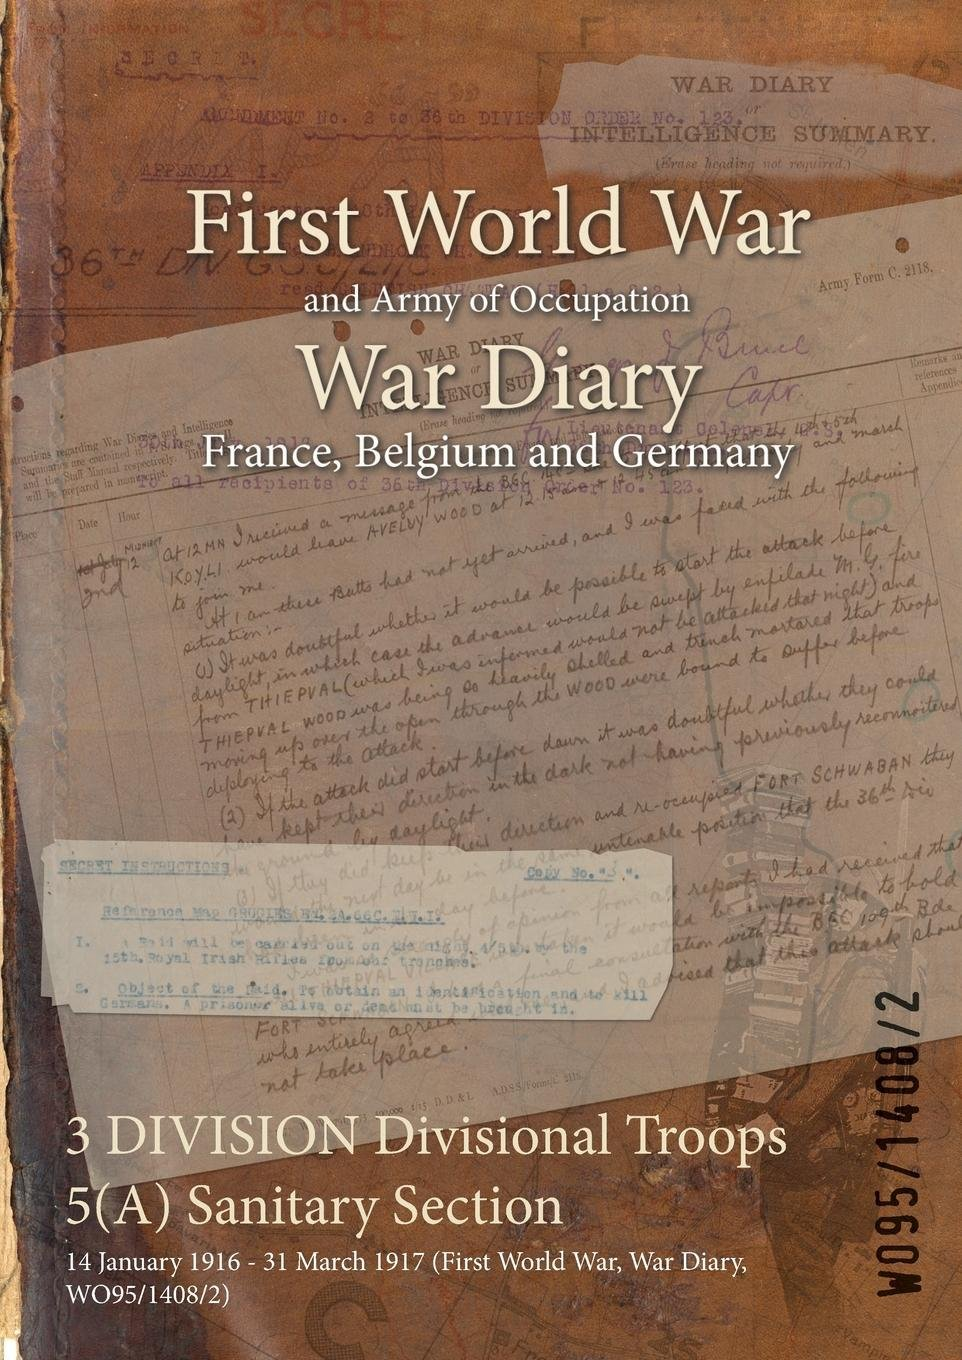 3 Division Divisional Troops 5(a) Sanitary Section: 14 January 1916 - 31 March 1917 (First World War, War Diary, Wo95/1408/2) PDF